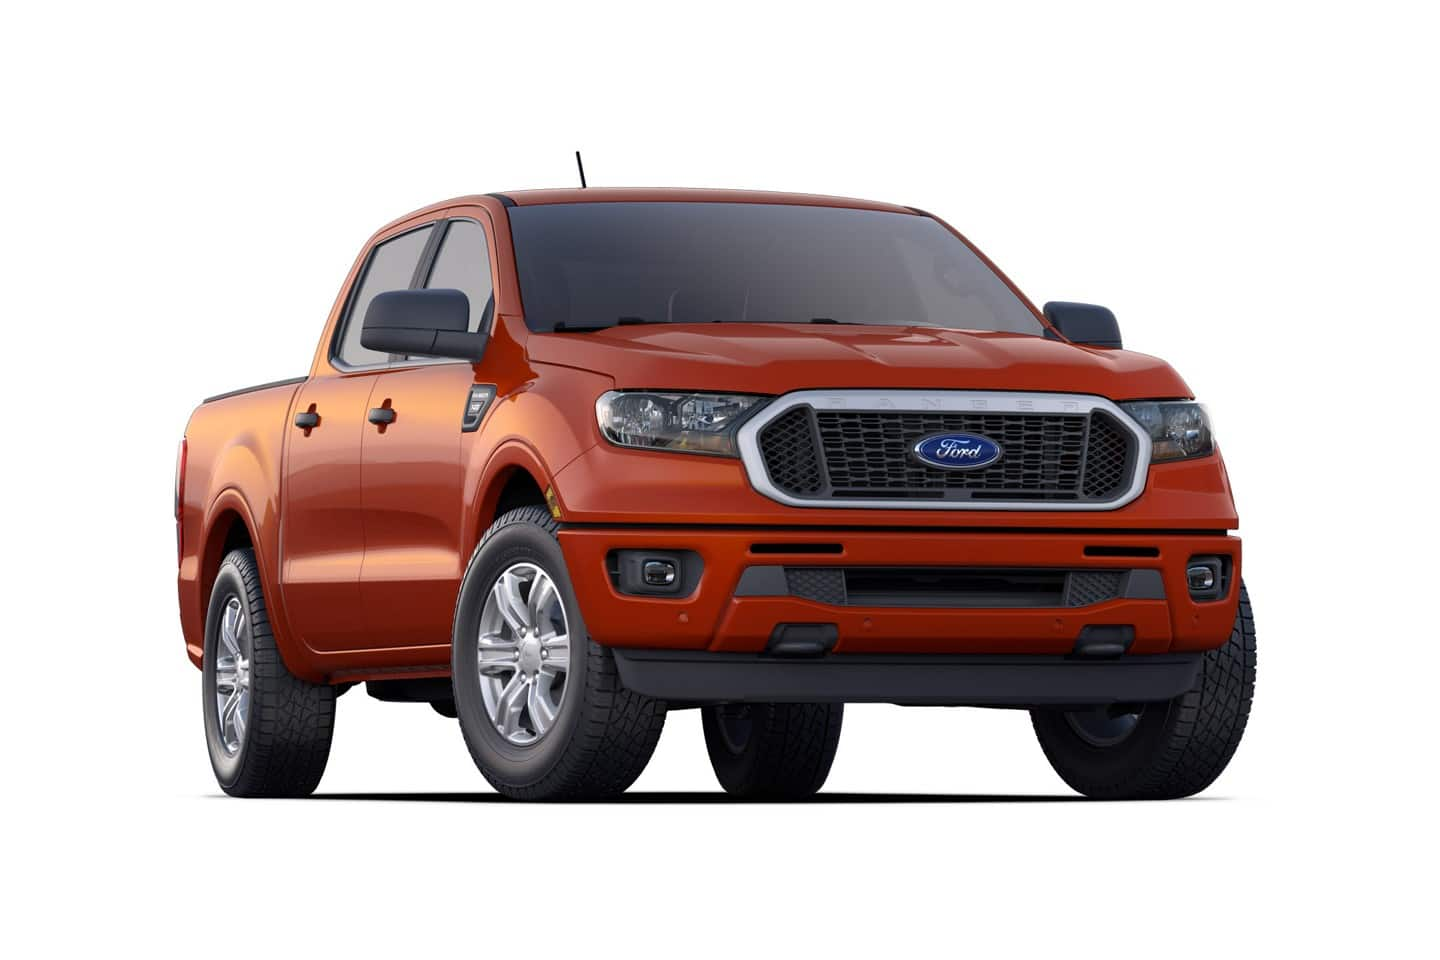 92 Great The Is The 2019 Ford Ranger Out Yet Review And Price Configurations for The Is The 2019 Ford Ranger Out Yet Review And Price